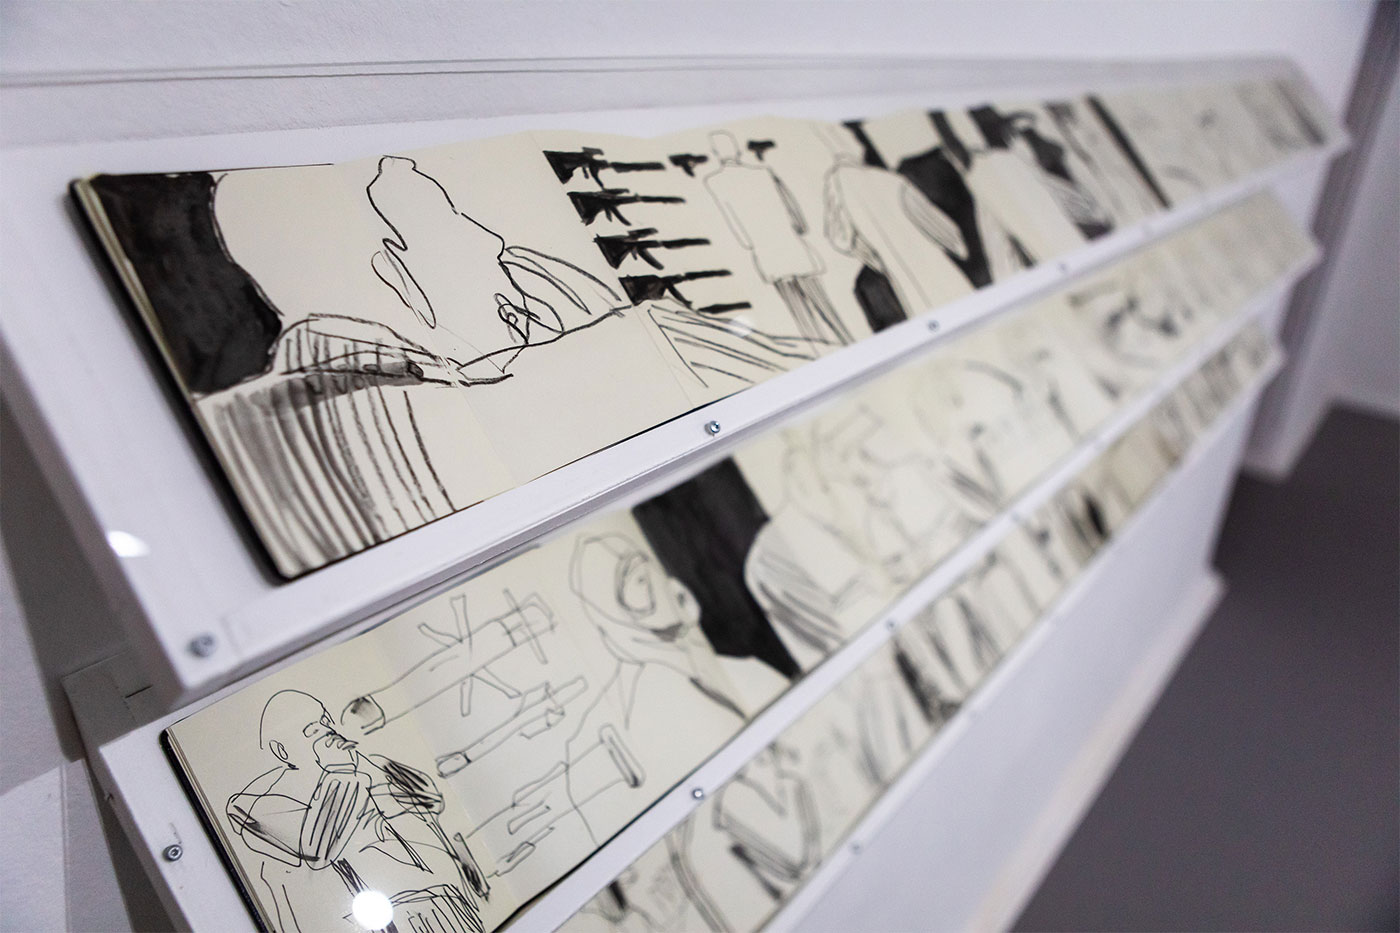 Jill Gibbon »Installation of sketchbooks drawn undercover at arms fairs - 2014-2019«, Exhibition View »Up in Arms«, Kunstraum Kreuzberg/Bethanien 2019 (Photo: Julian van Dieken)